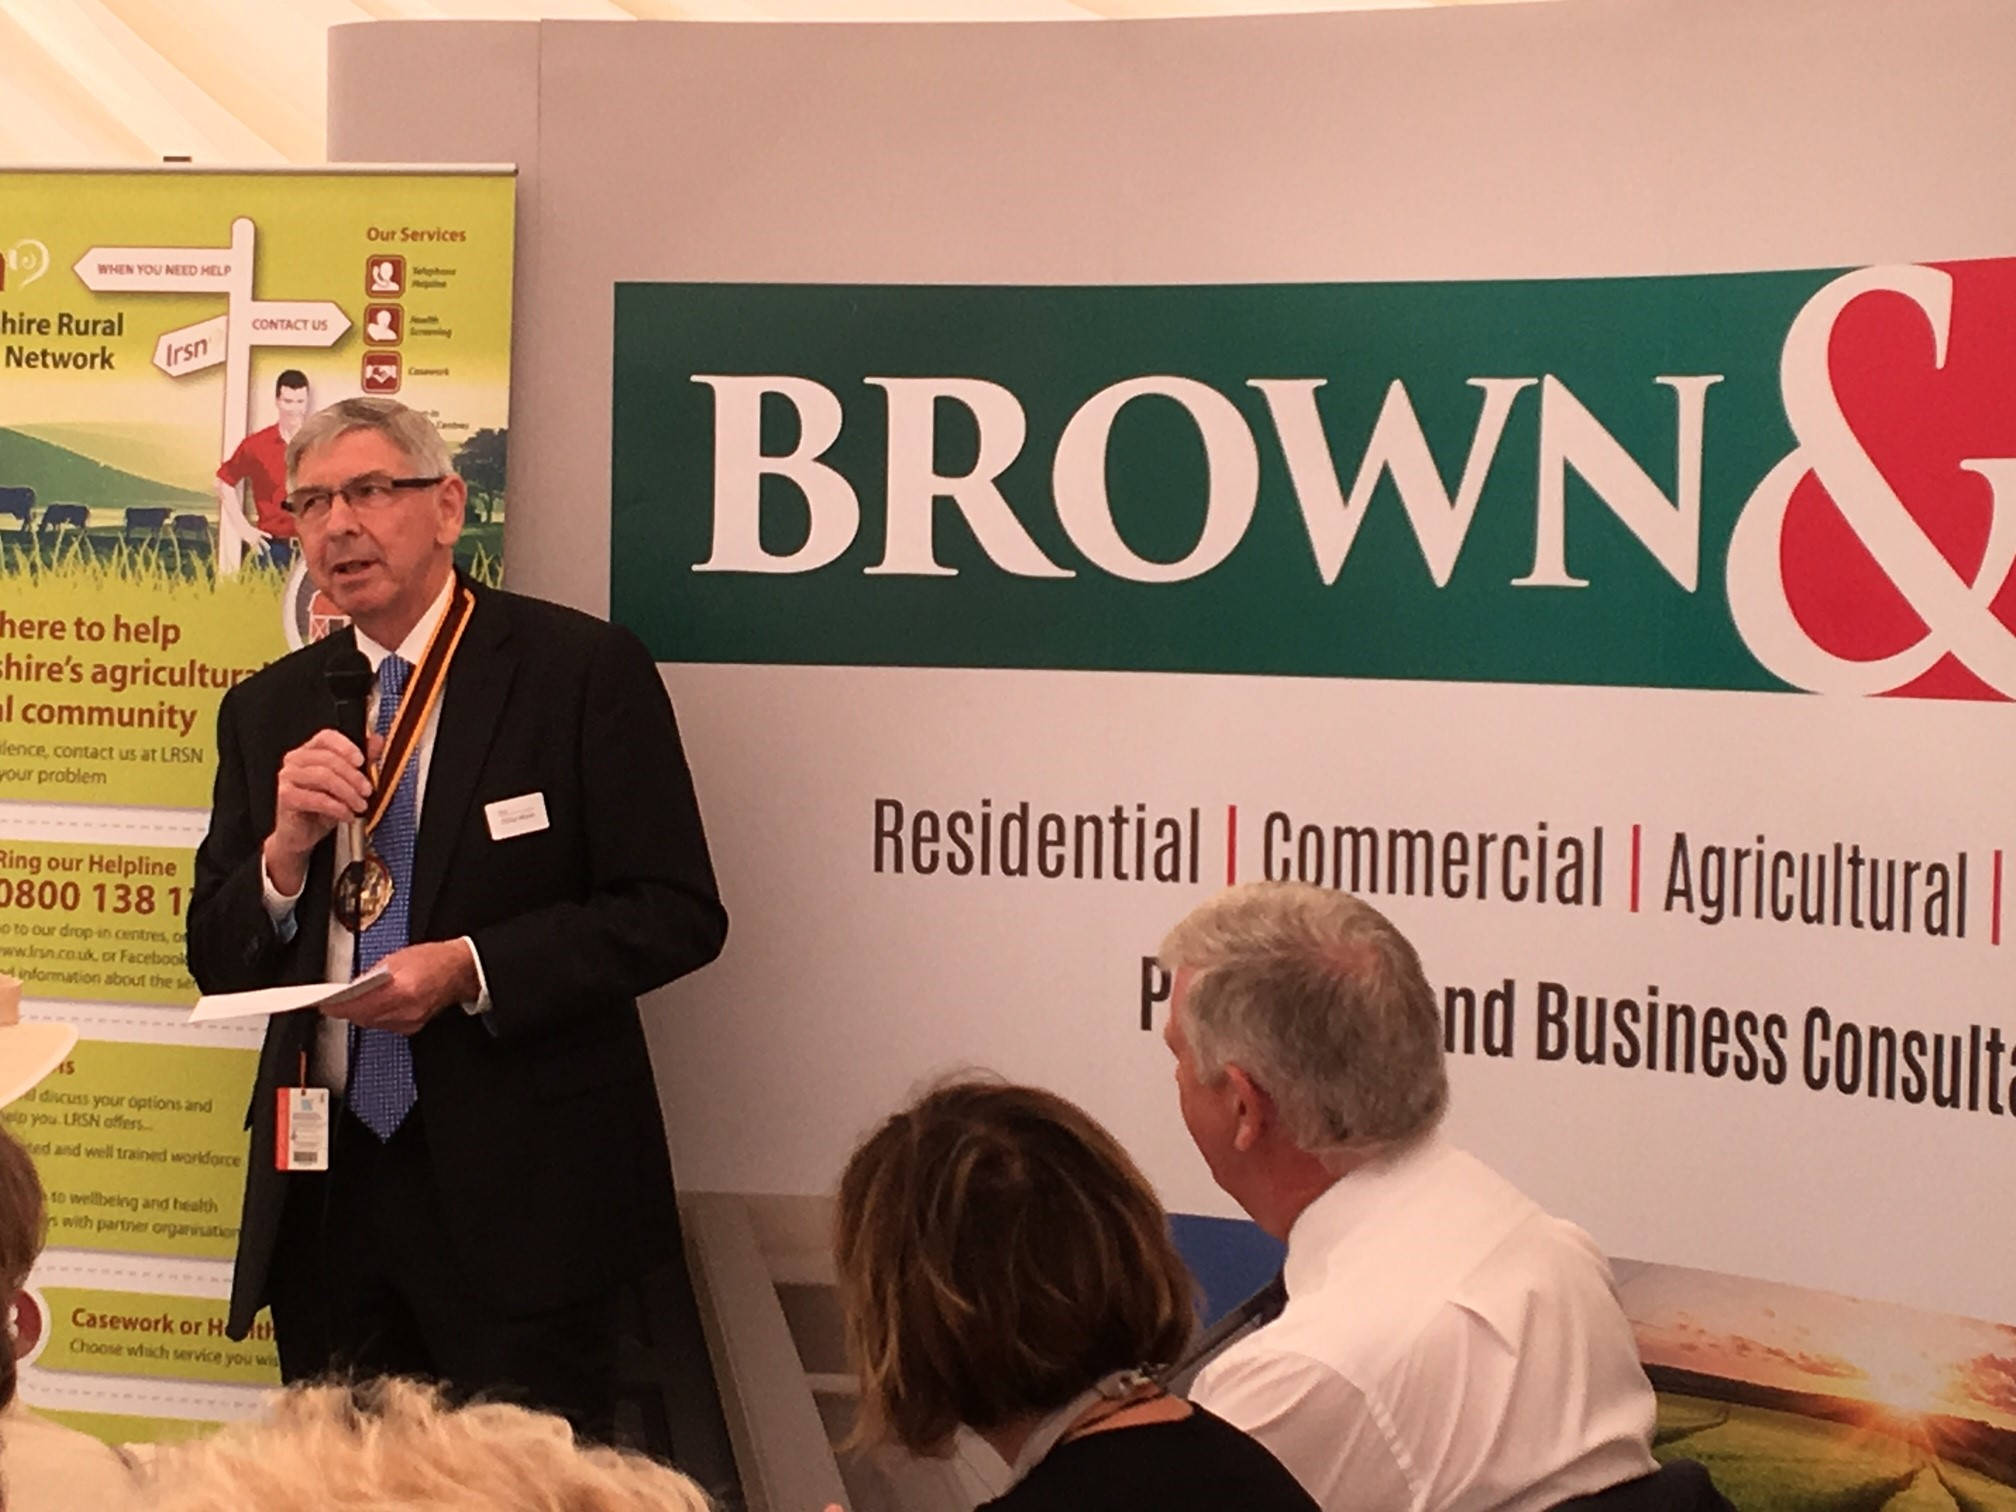 Philip Wynn addressing guests at the LRSN Breakfast meeting at the Lincolnshire Show